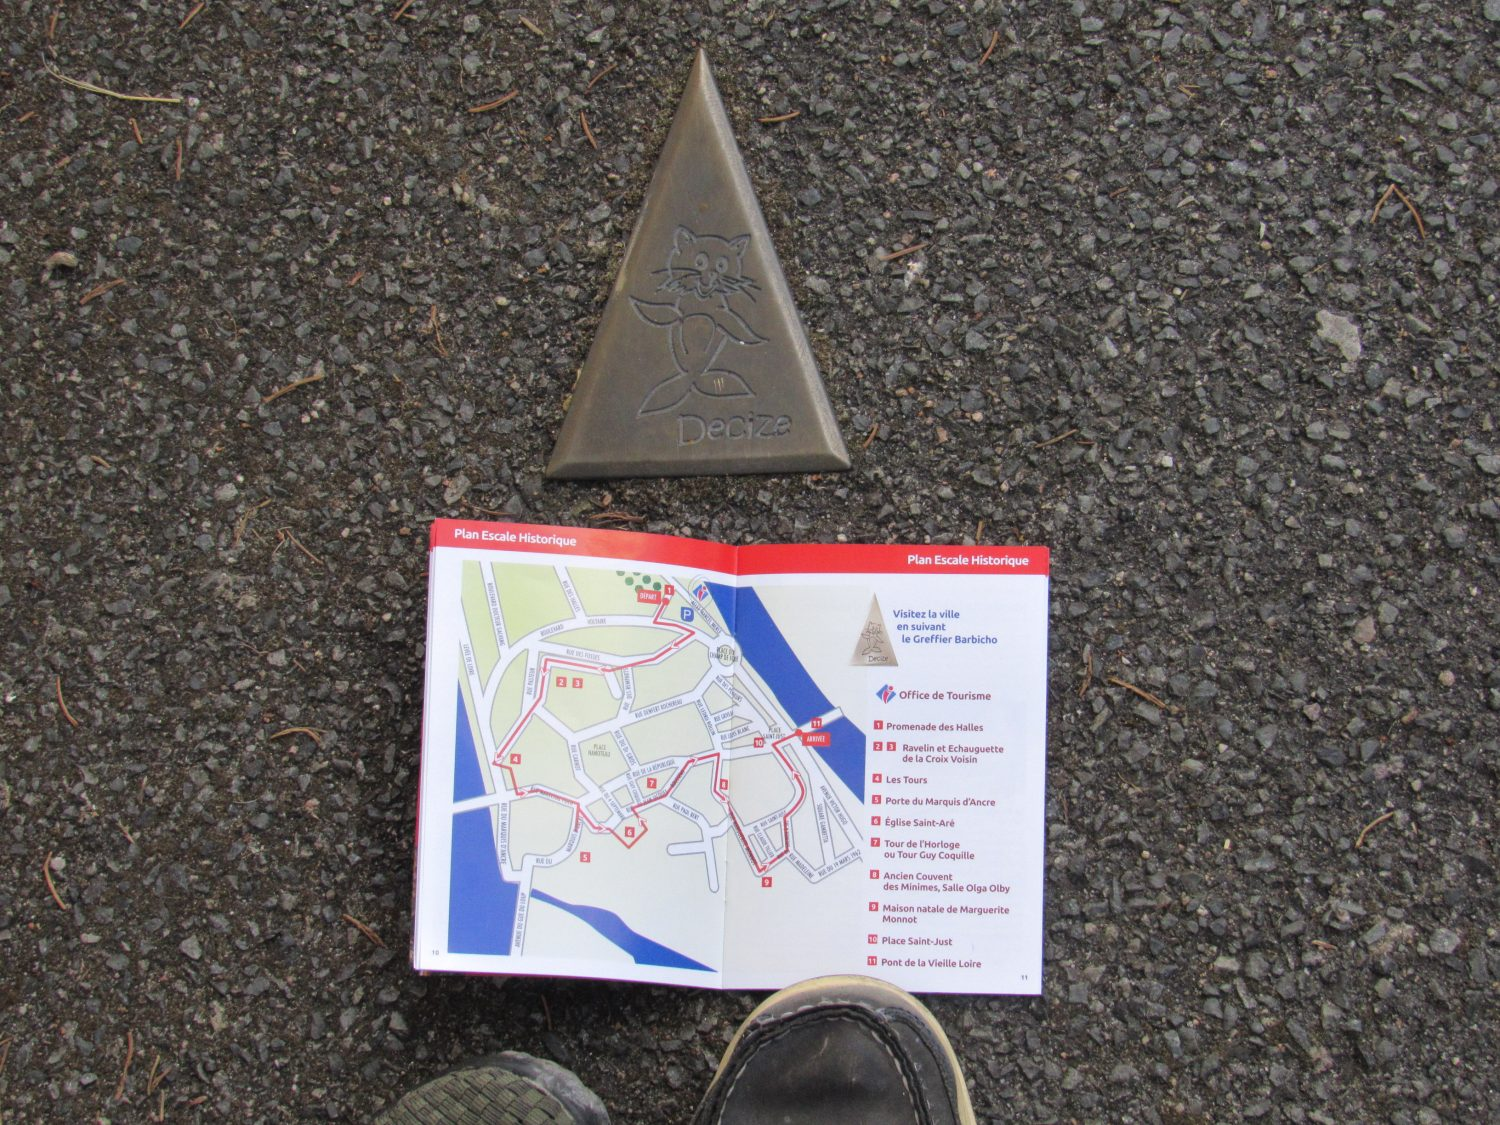 Typical walking tour map with bronze guides